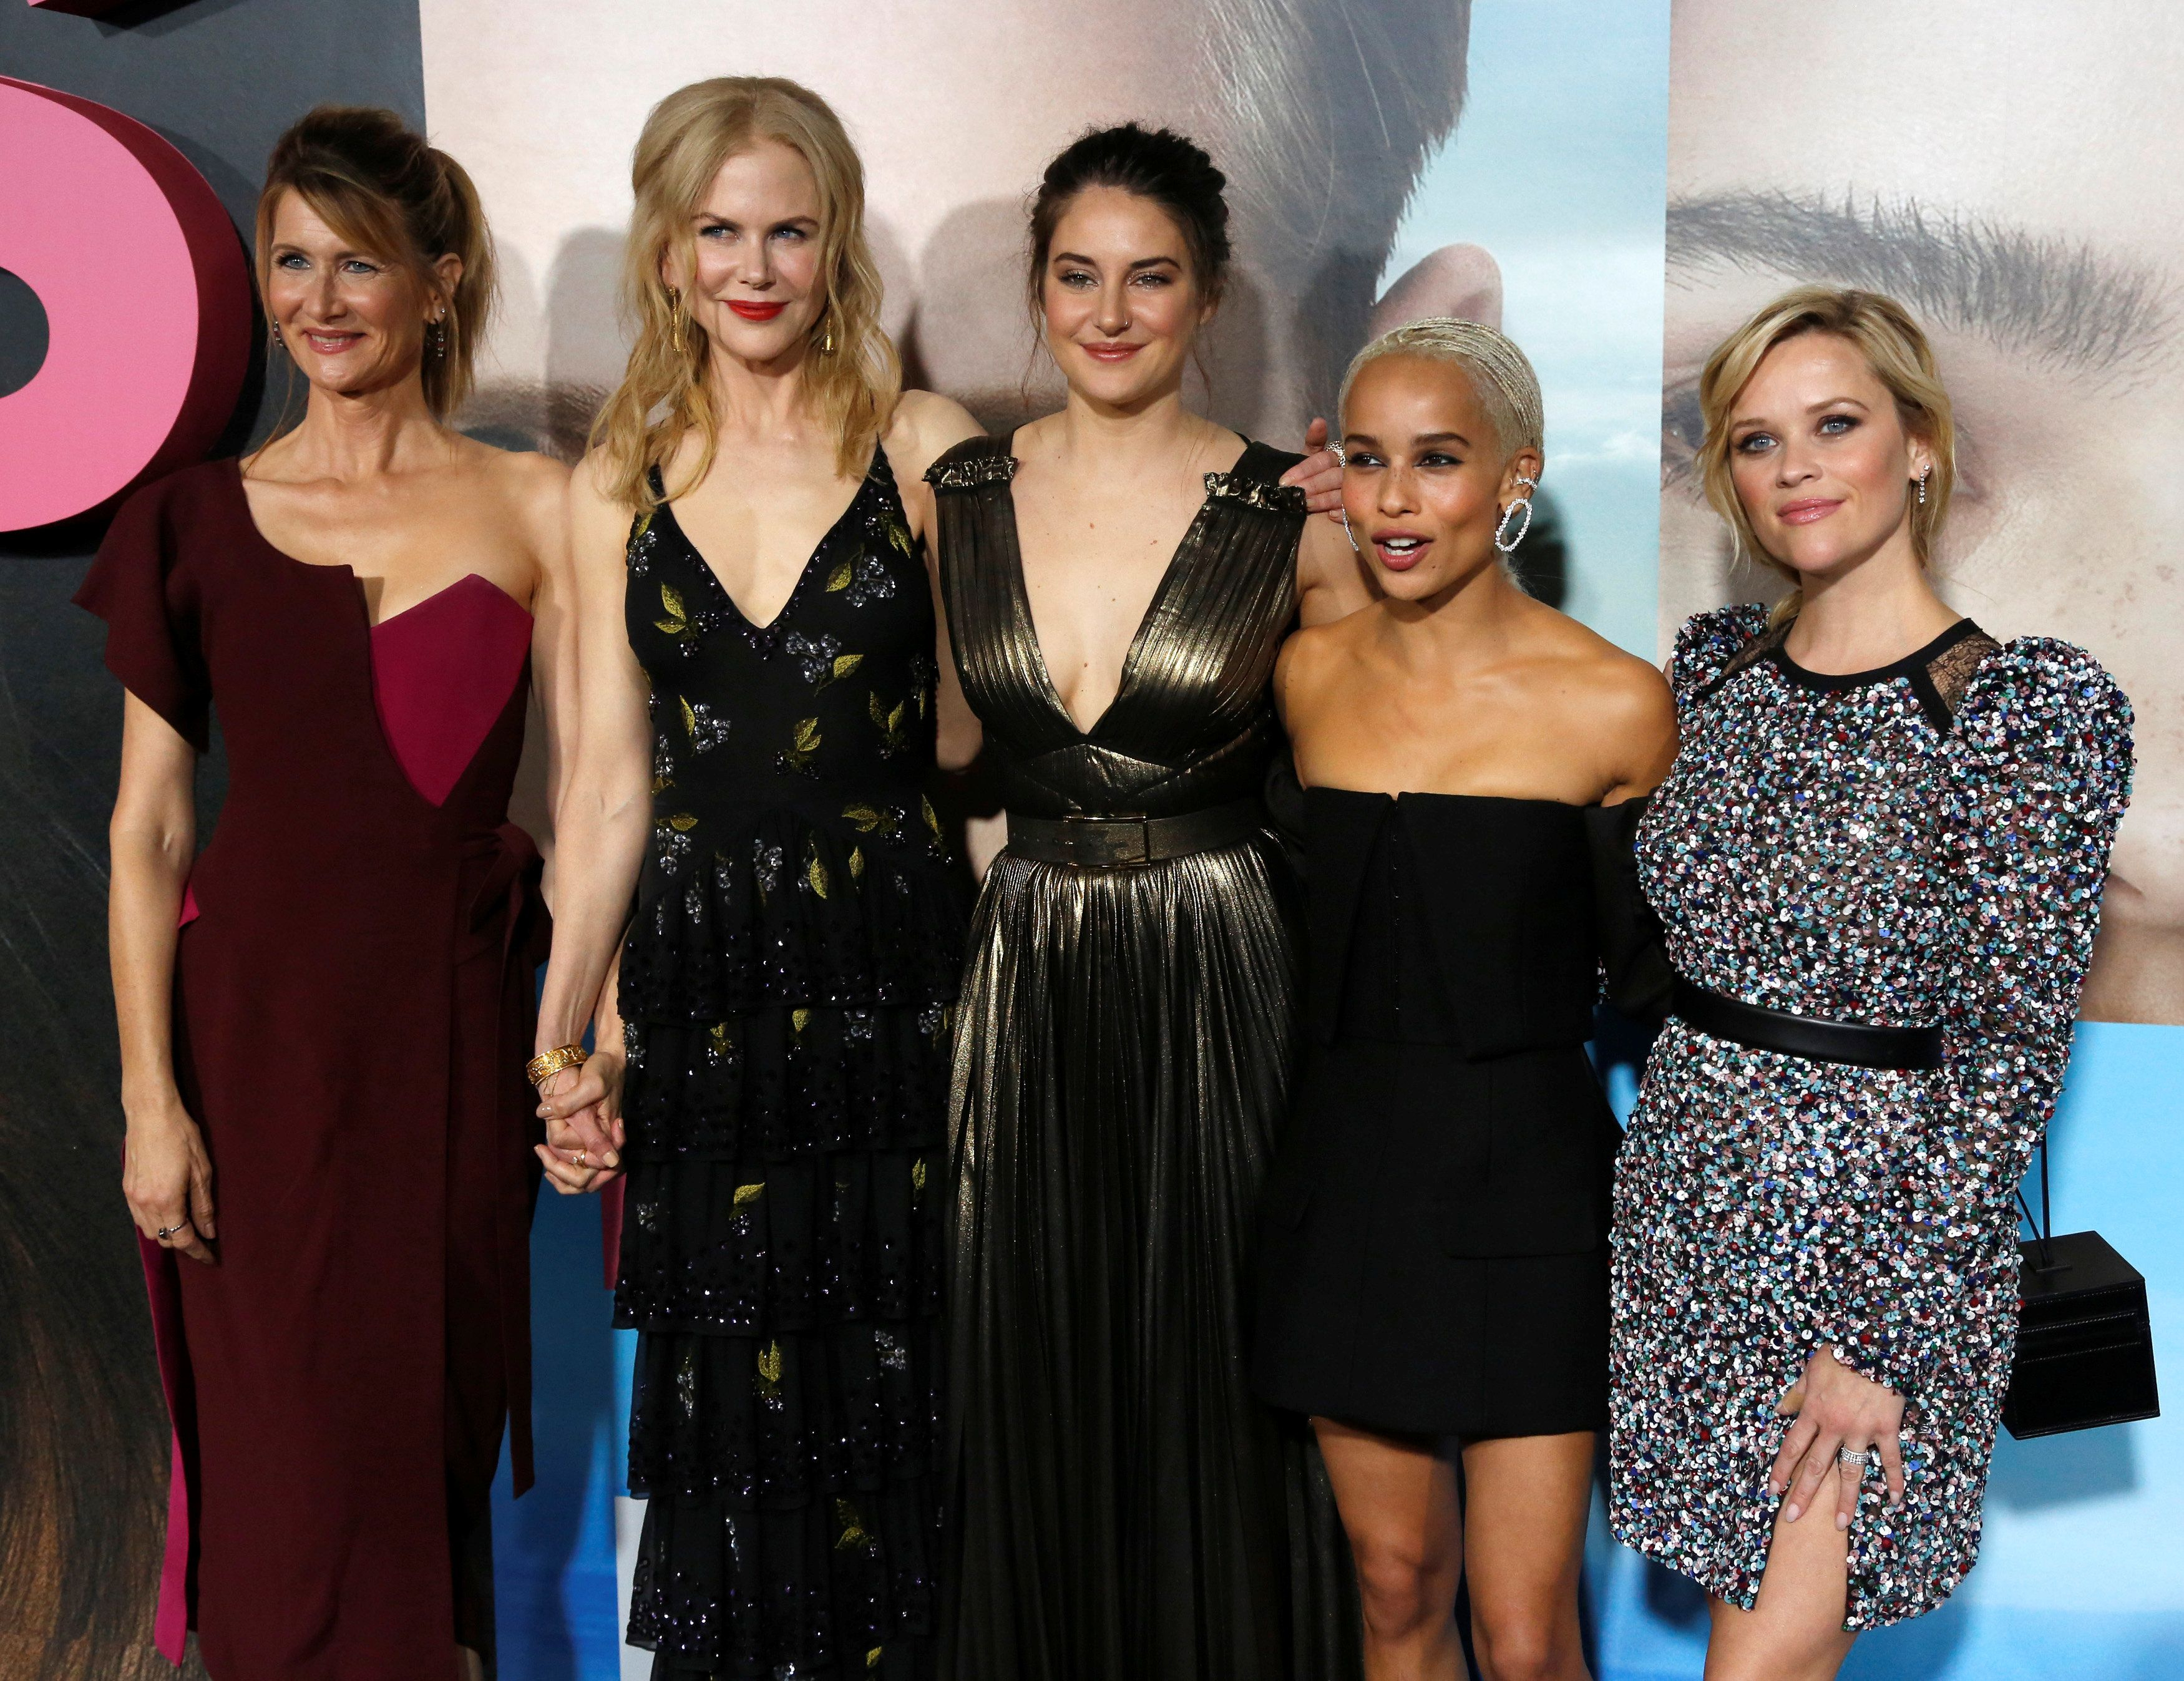 """Cast members (L-R) Laura Dern, Nicole Kidman, Shailene Woodley, Zoe Kravitz and Reese Witherspoon pose at the premiere of the HBO television series """"Big Little Lies"""" in Los Angeles, California U.S., February 7, 2017.   REUTERS/Mario Anzuoni"""